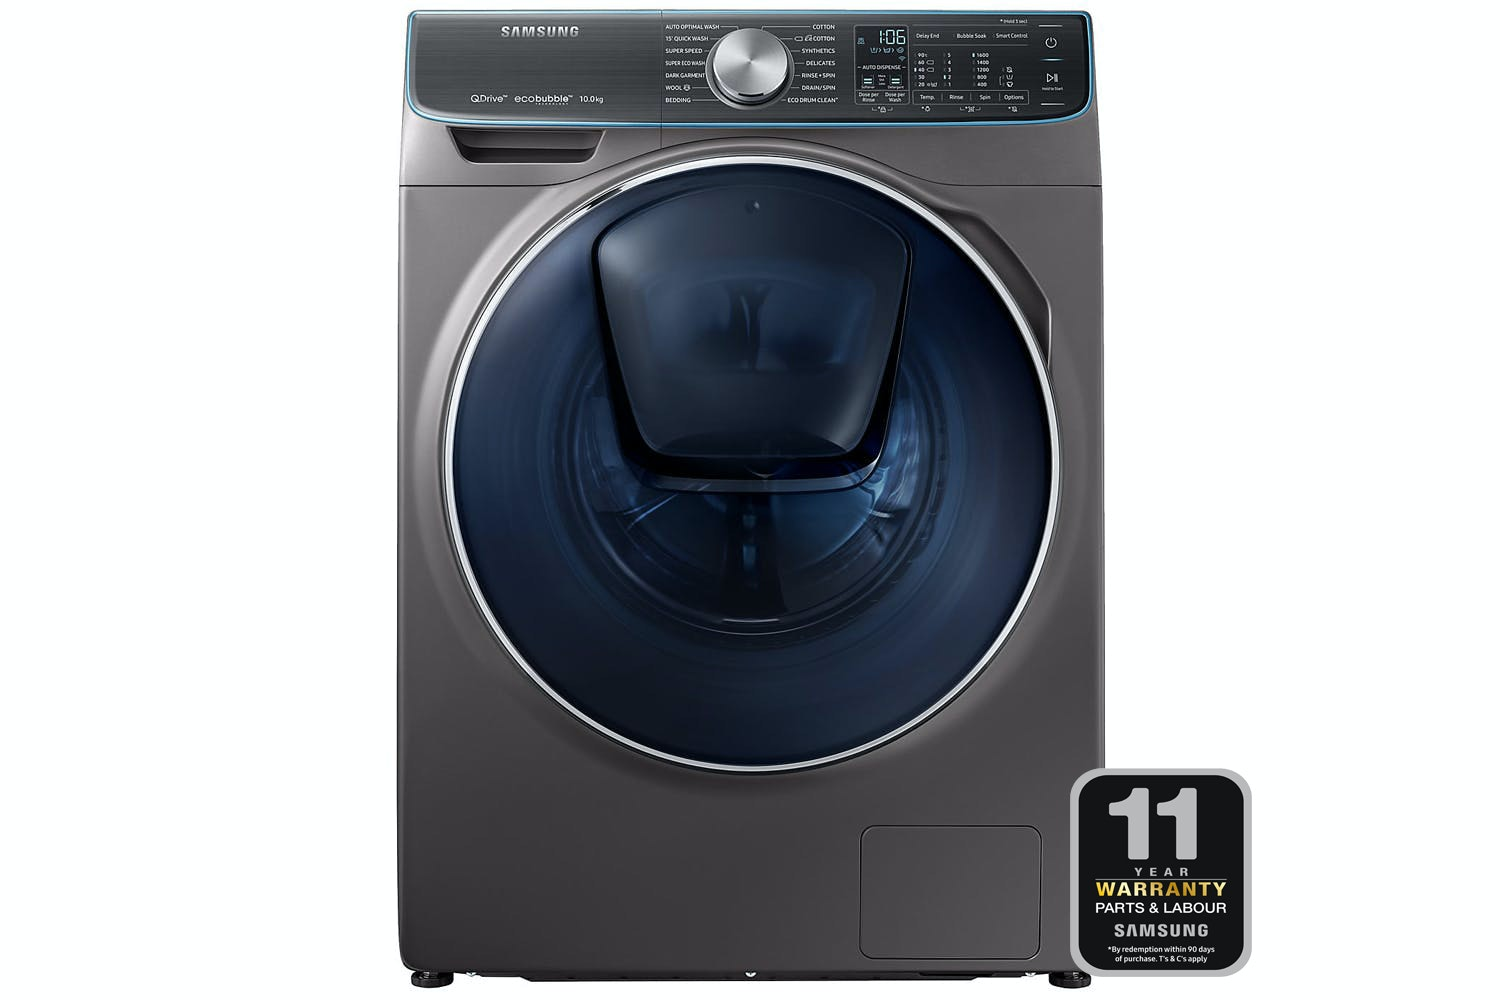 Samsung 10kg QuickDrive Washing Machine | WW10M86DQOO/EU